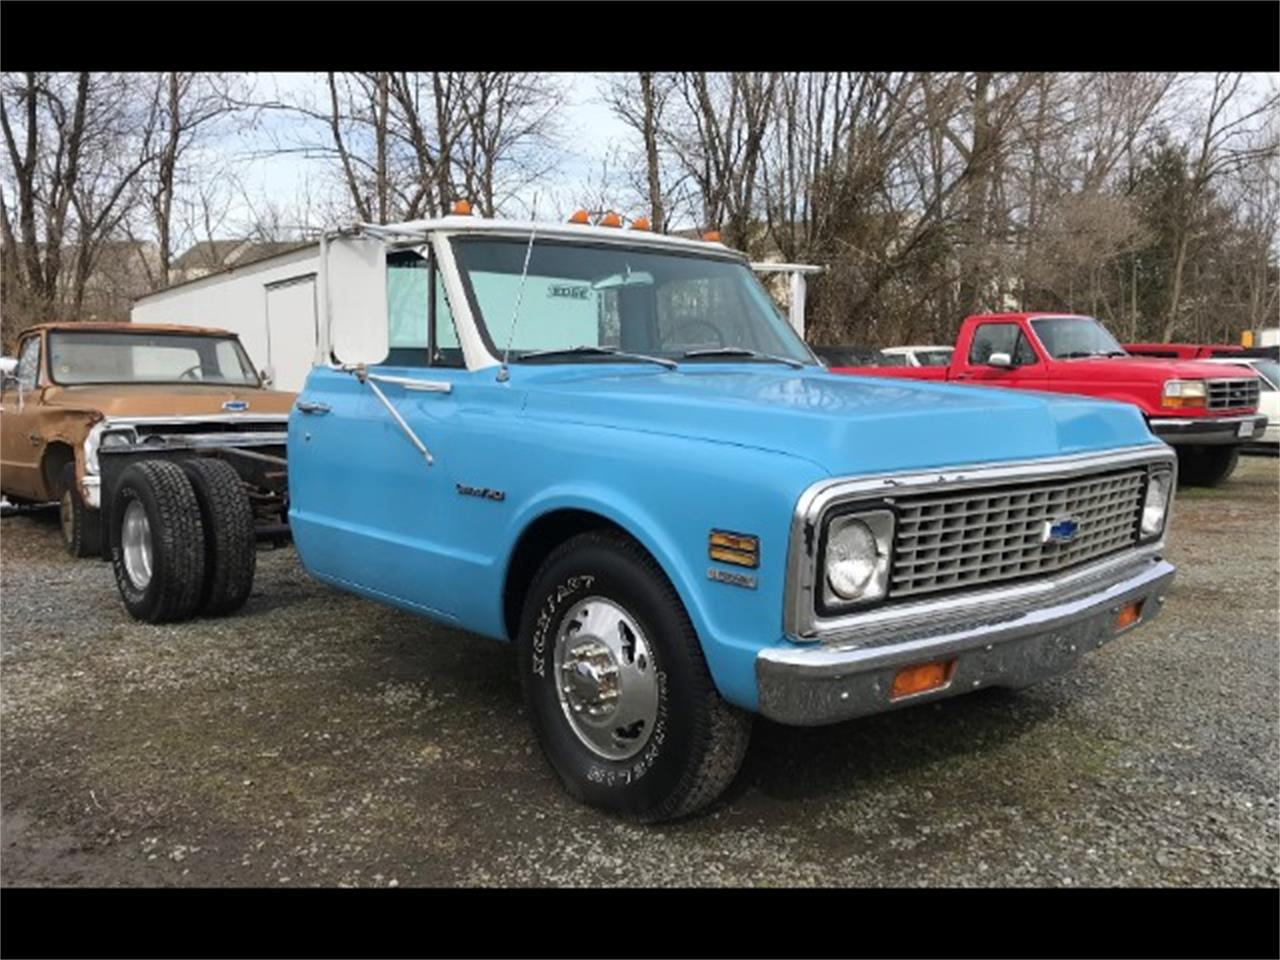 1971 Chevrolet 1 Ton Truck for sale in Harpers Ferry, WV